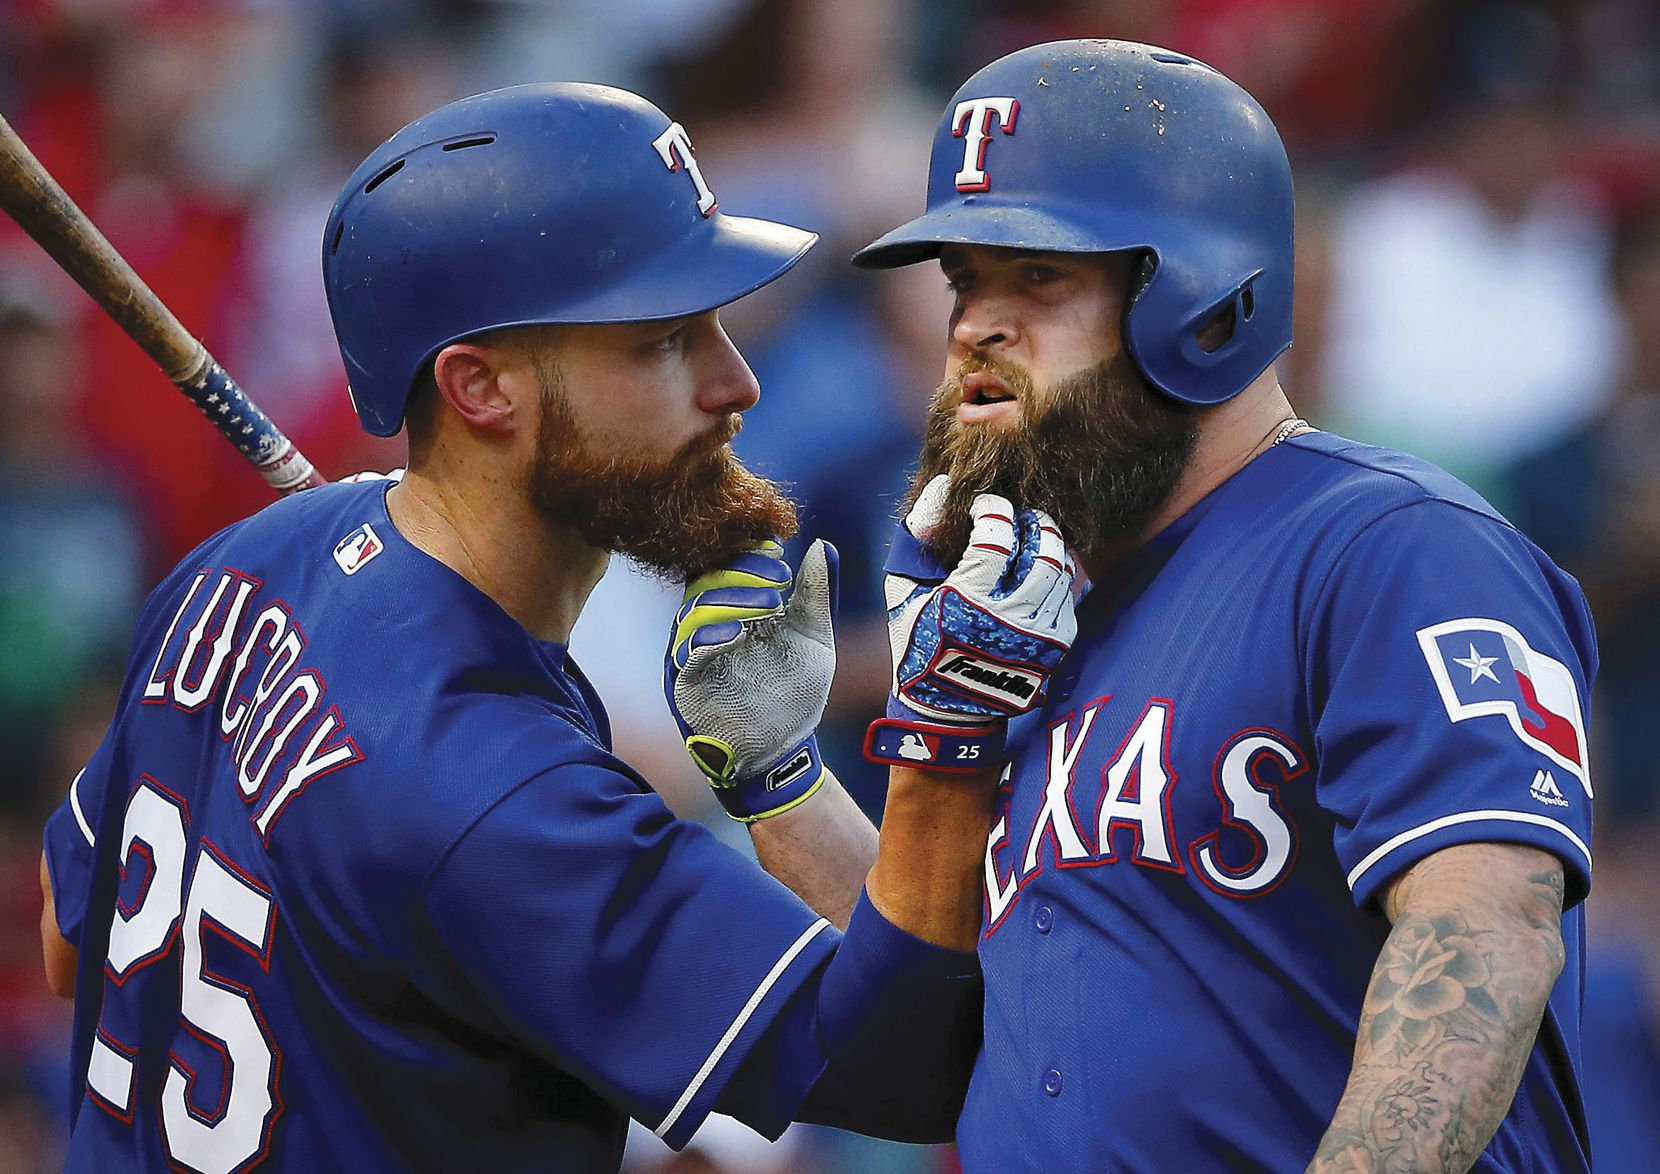 Rangers Mike Napoli (right) and teammate Jonathan Lucroy pull each other's beards after Napoli's third-inning home run against the Miami Marlins in Arlington.